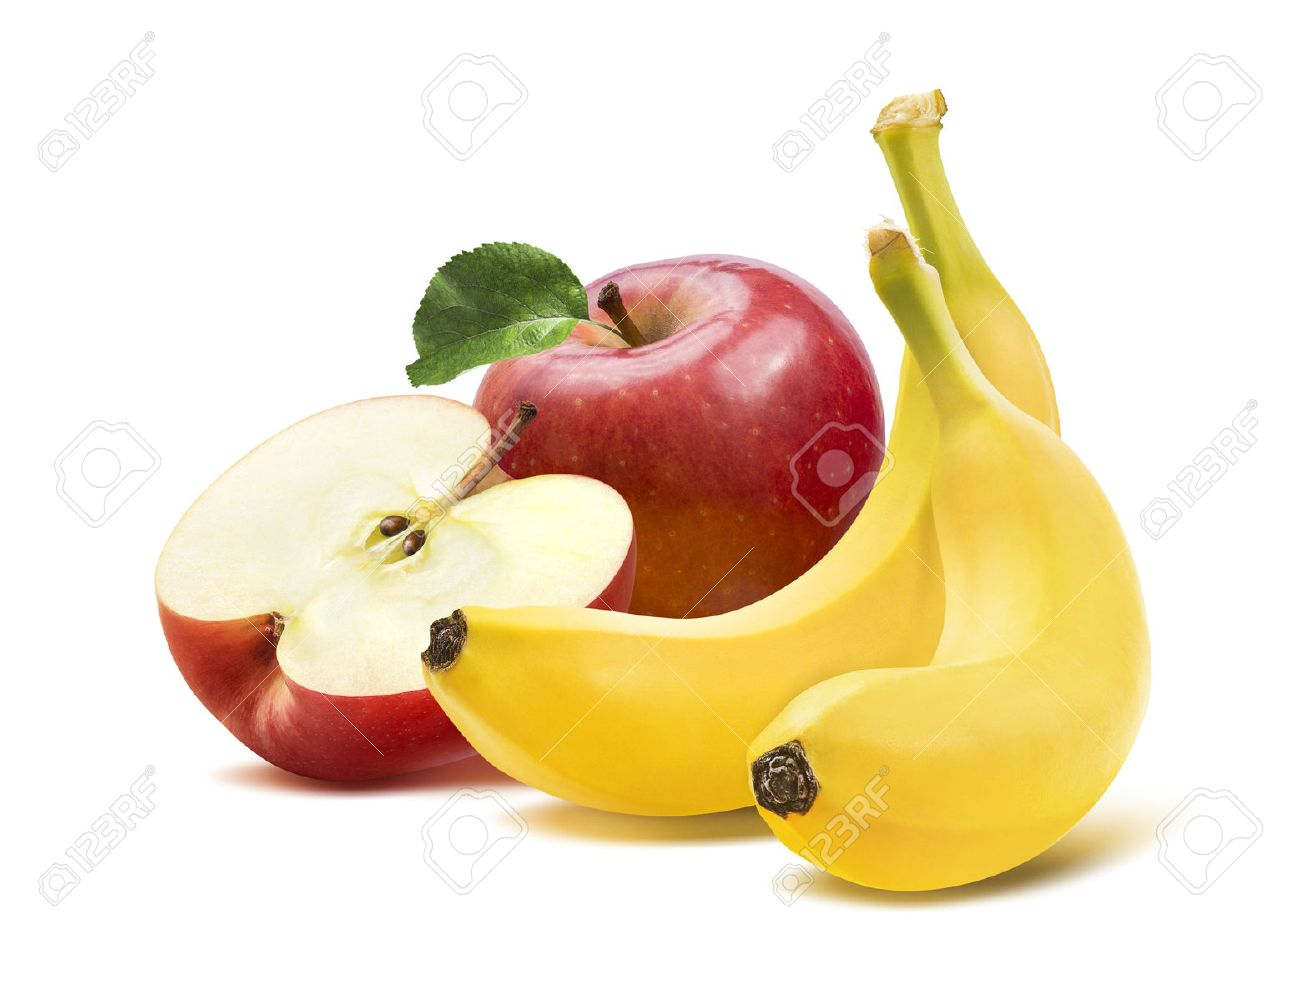 Banana and apples square composition 2 isolated on white background as package design element - 40623737